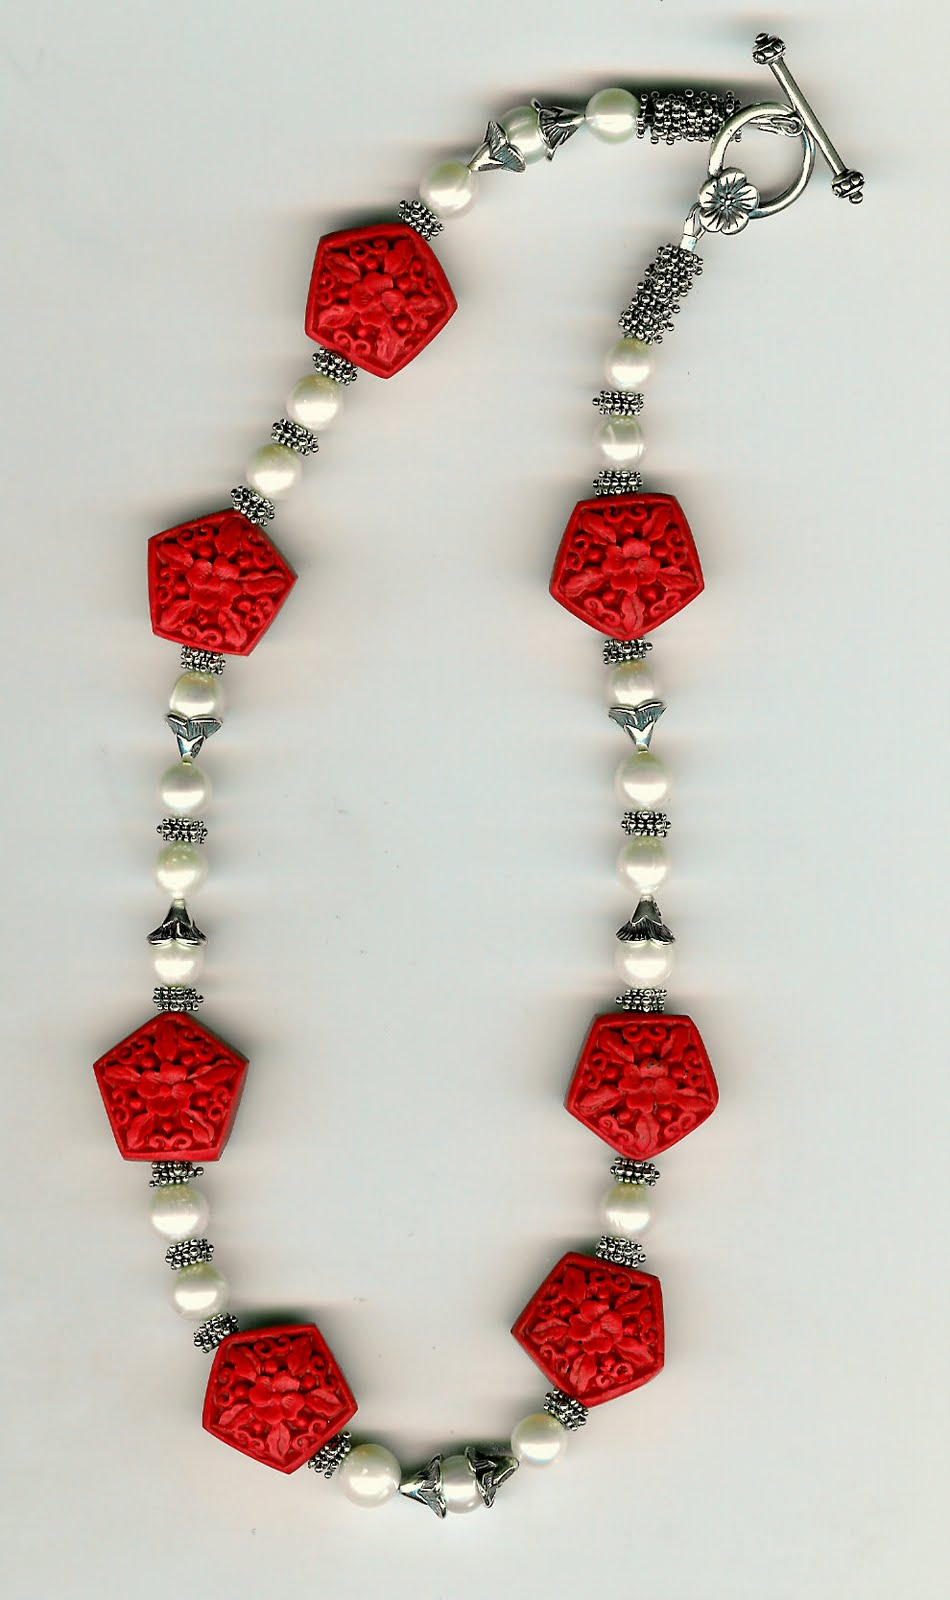 221. Carved Cinnabar, Freshwater pearls and Bali Sterling Silver